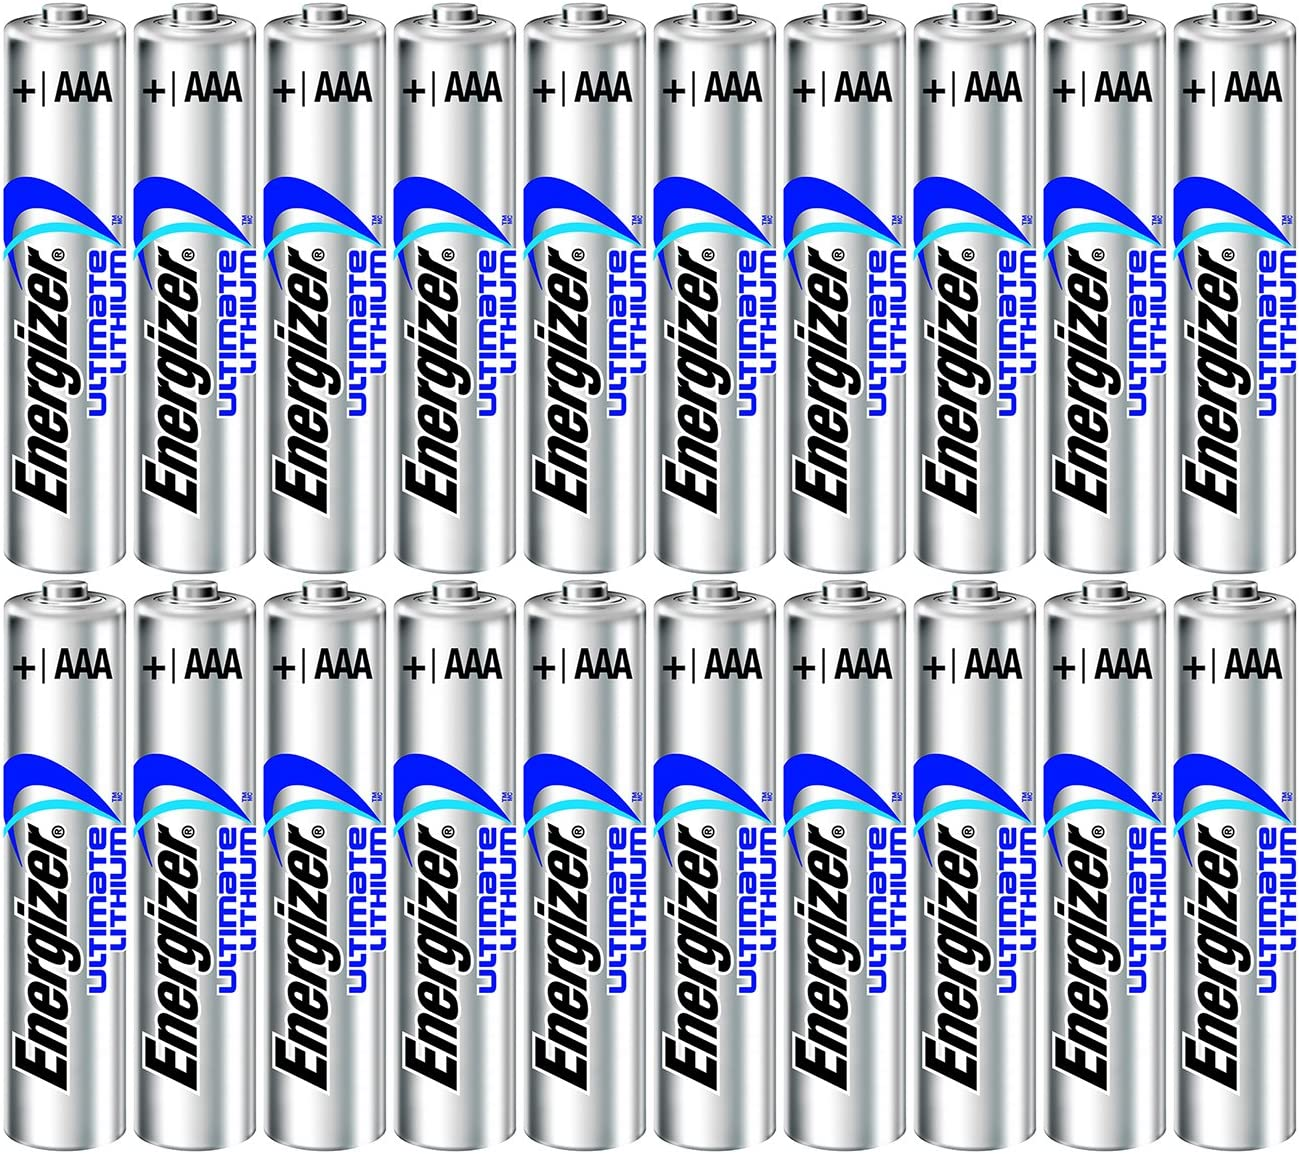 Energizer Ultimate Lithium AAA Size Batteries - 20 Pack - Bulk Packaging